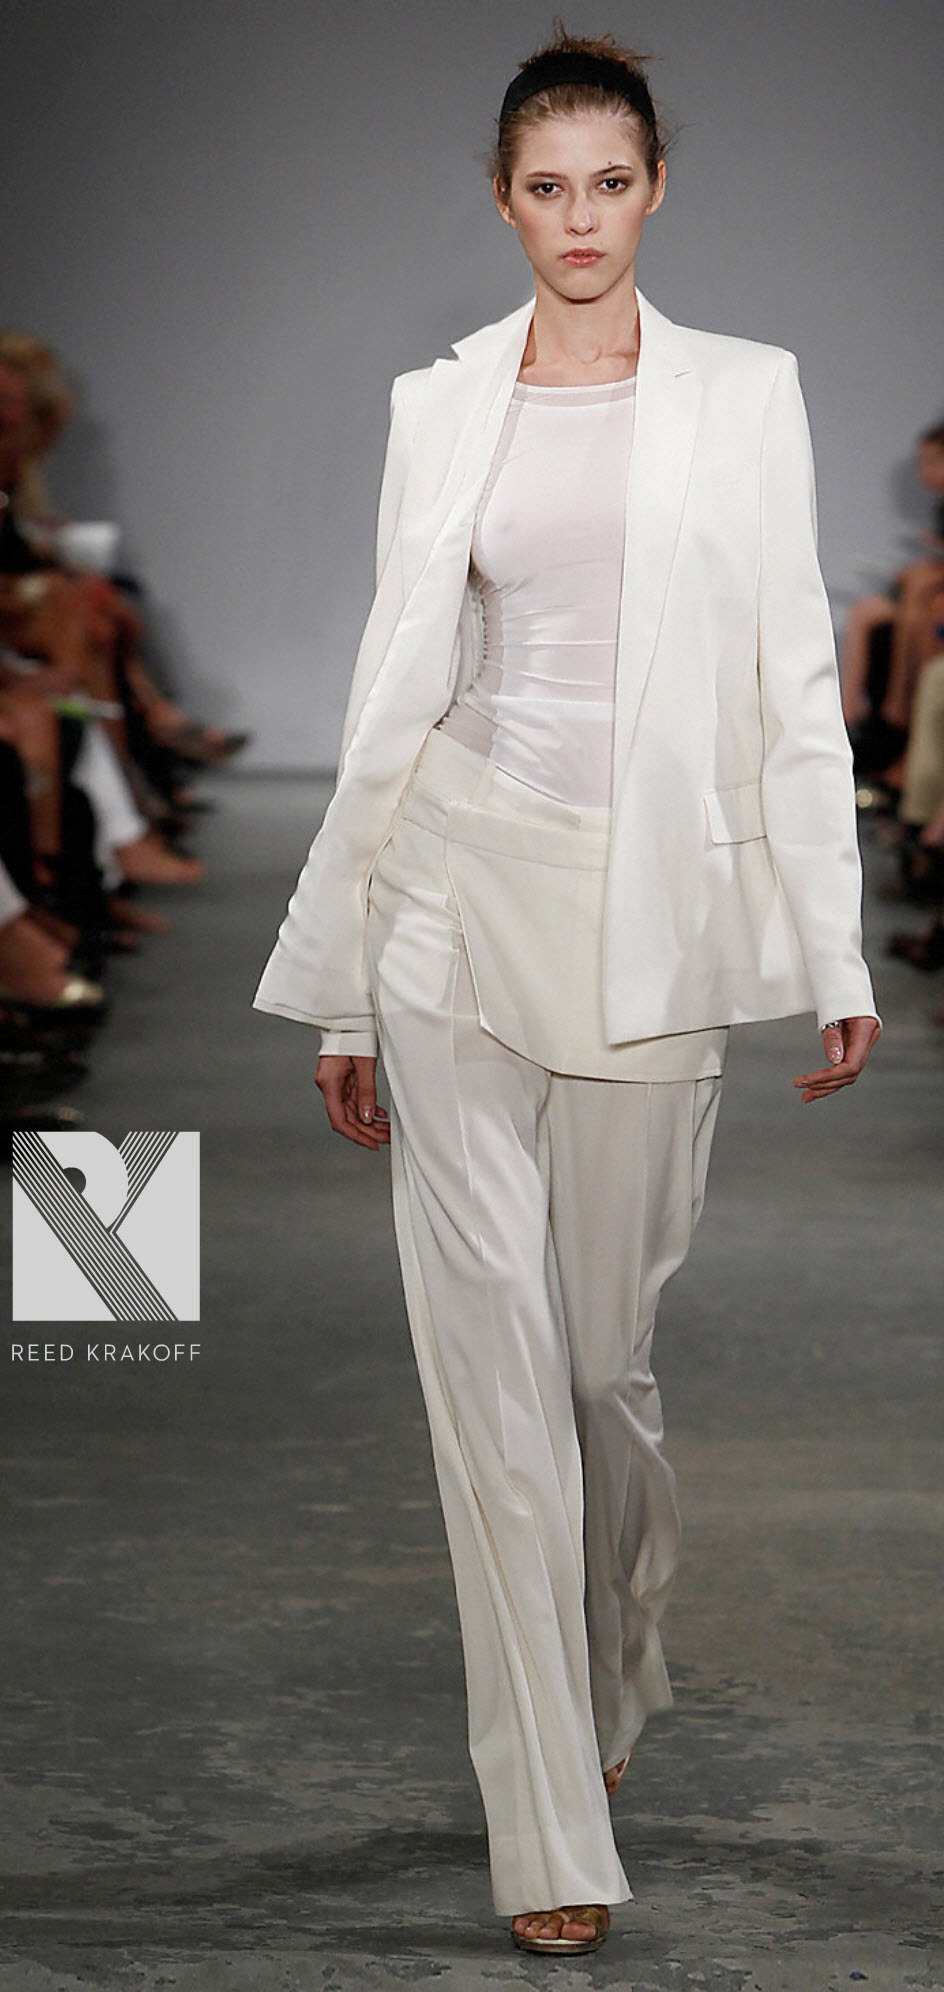 White-tailored-suit-bridal-style-trends-reed-krakoff.full